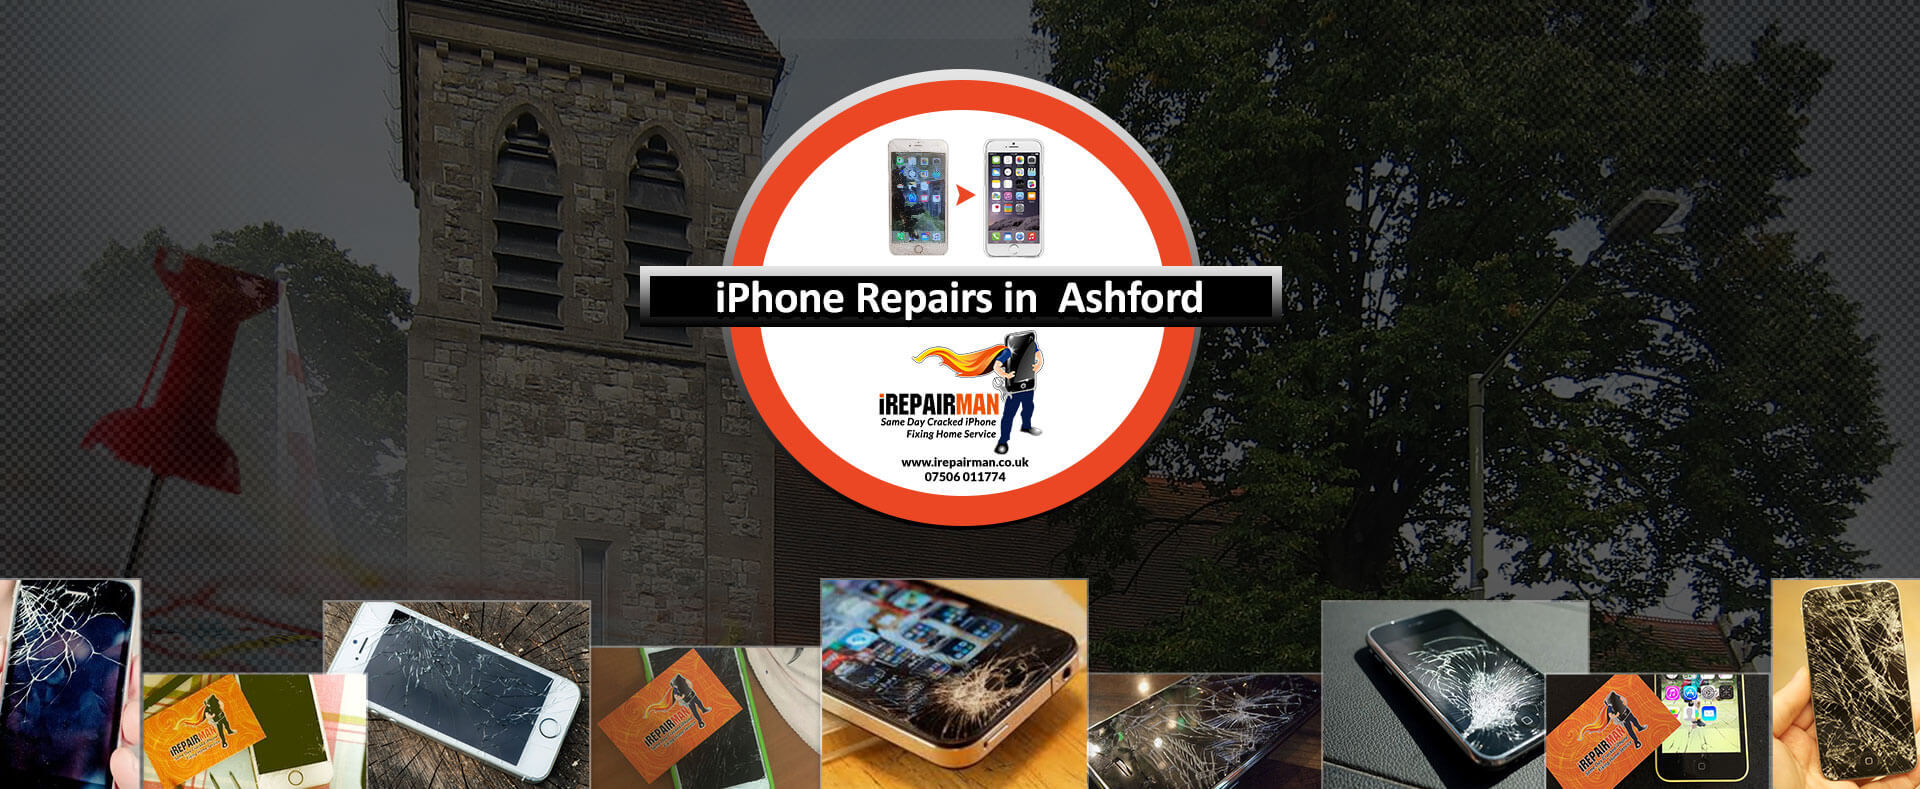 iPhone Repairs in Ashford